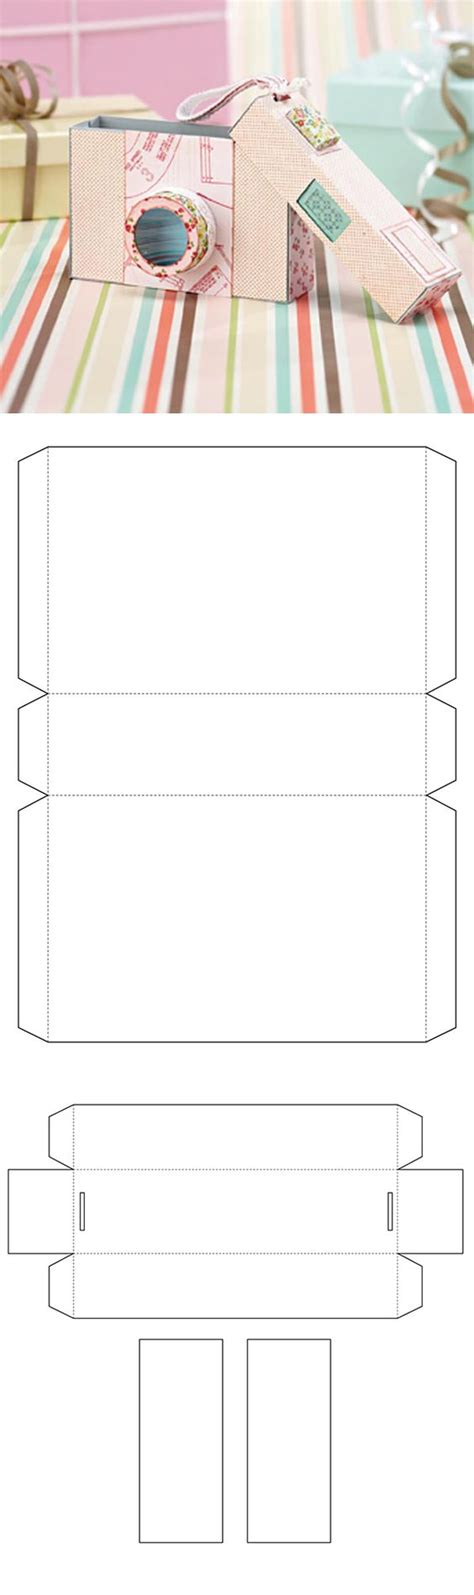 Papercraft Box Template - free gift box template from papercraft